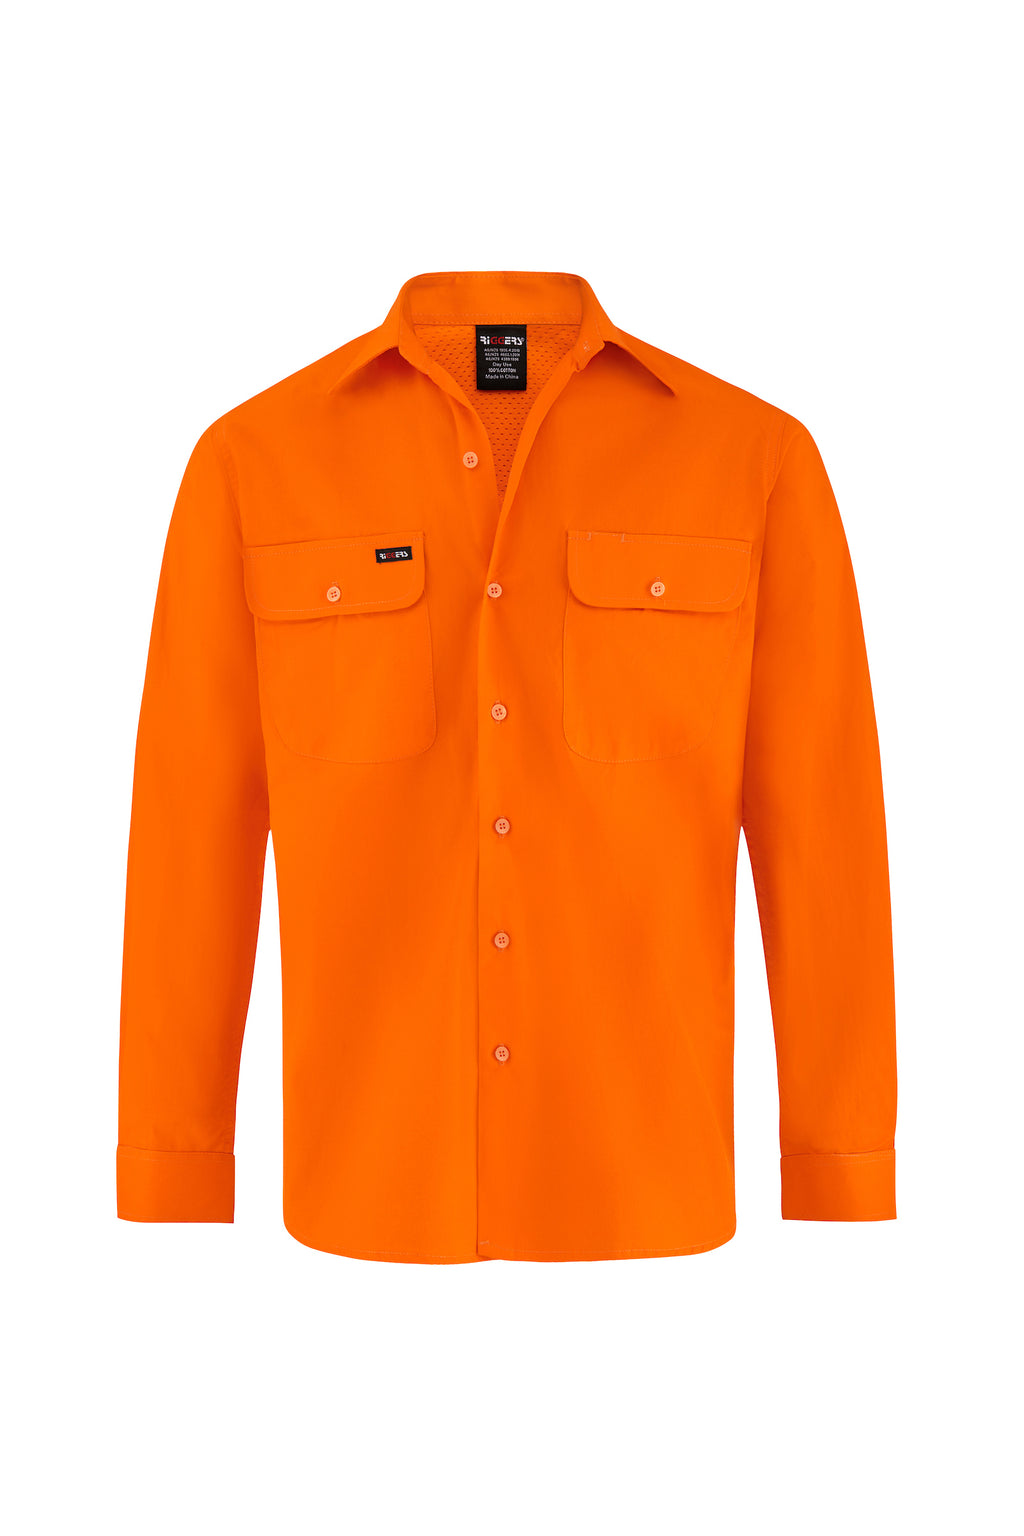 HIGH VIS ULTRA COOL LONG SLEEVE COTTON VENTED SHIRT-Riggers Online Store